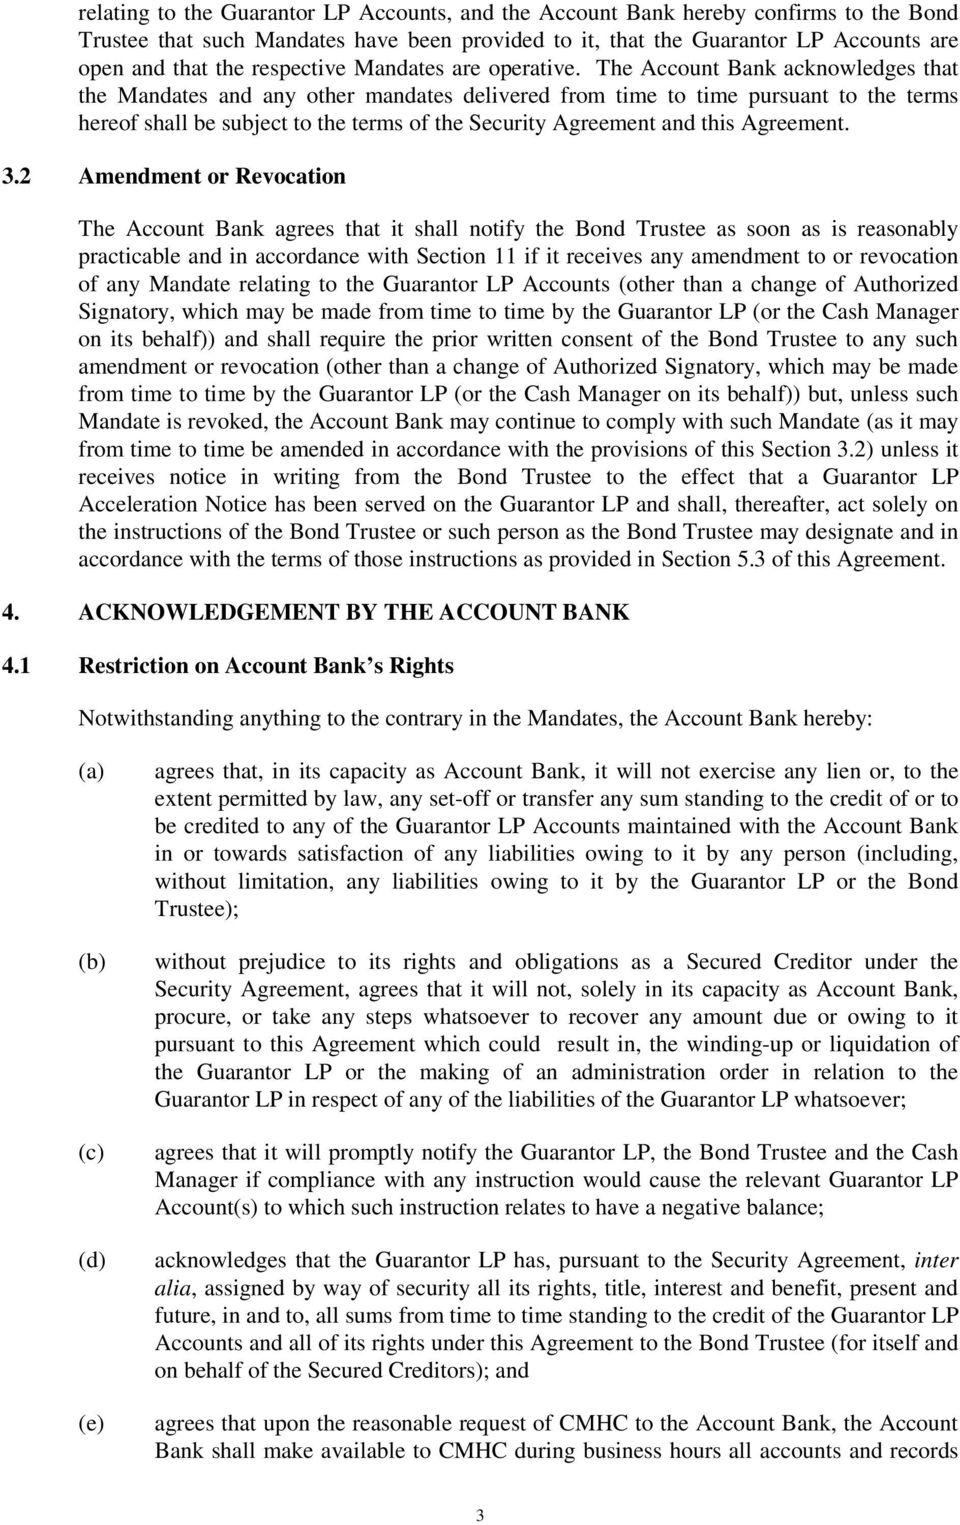 The Account Bank acknowledges that the Mandates and any other mandates delivered from time to time pursuant to the terms hereof shall be subject to the terms of the Security Agreement and this